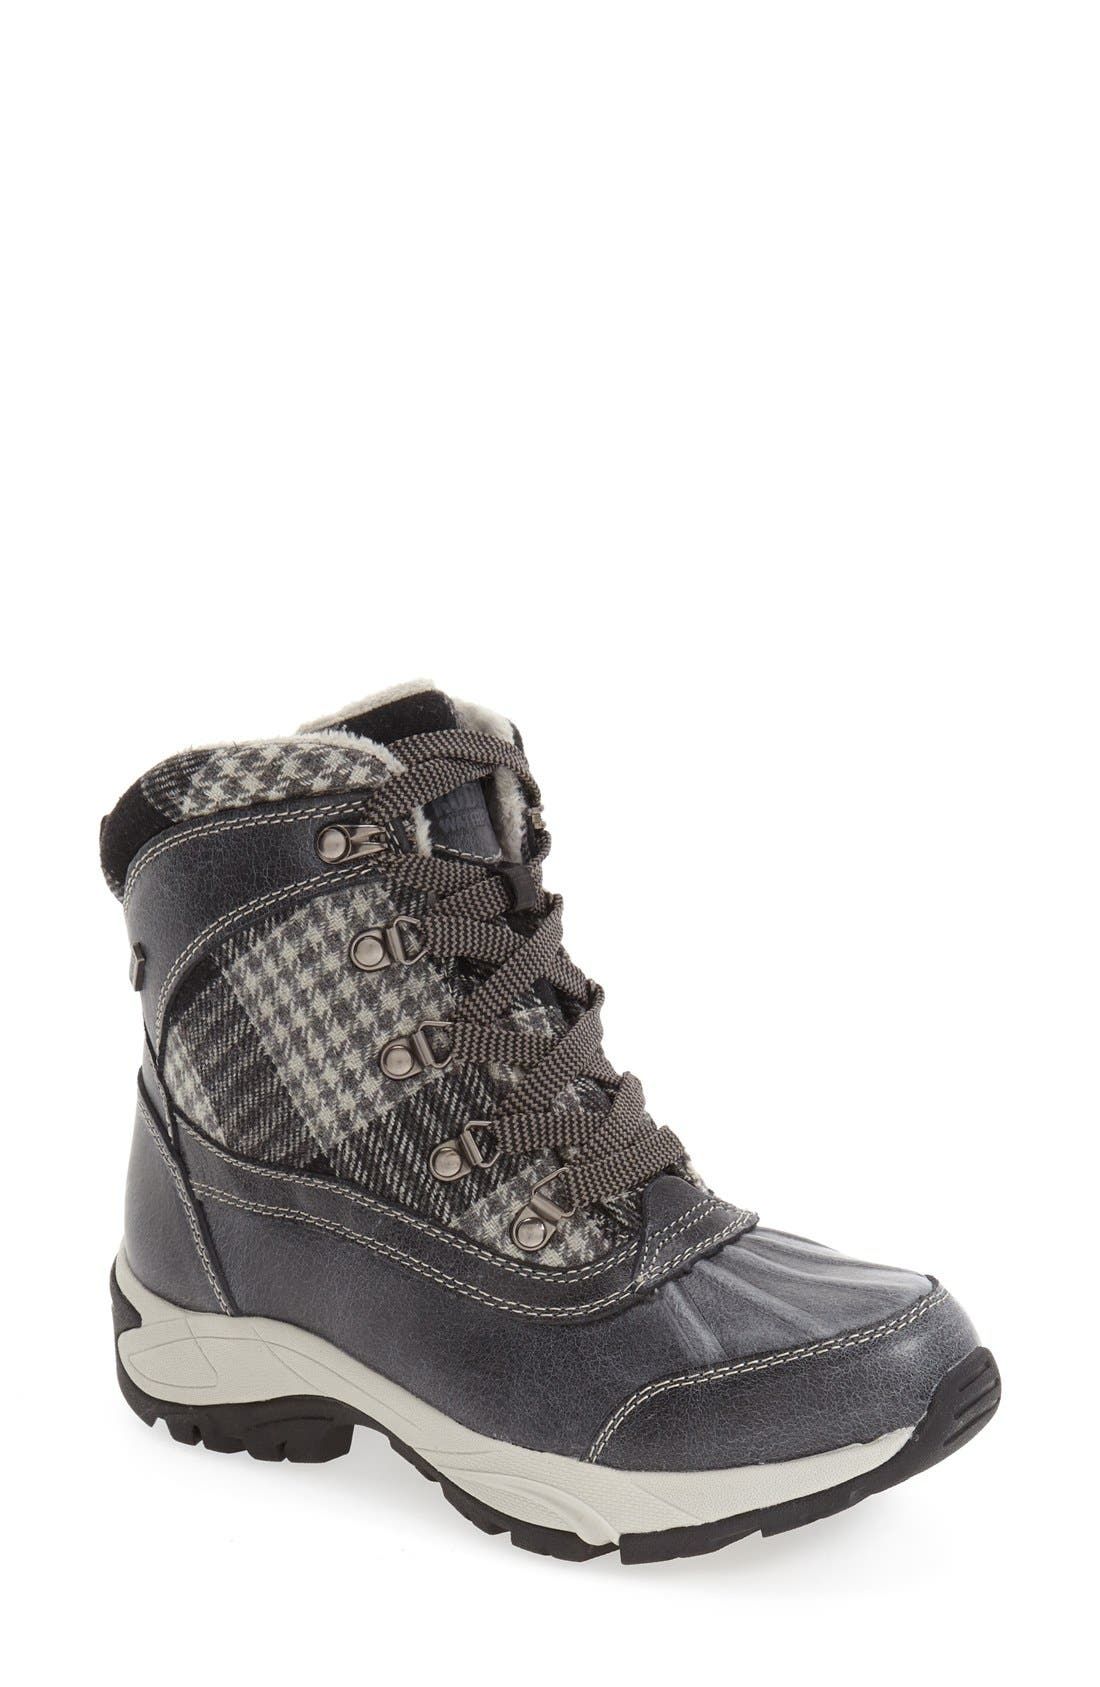 Rochelle Waterproof Insulated Winter Boot,                             Main thumbnail 1, color,                             002